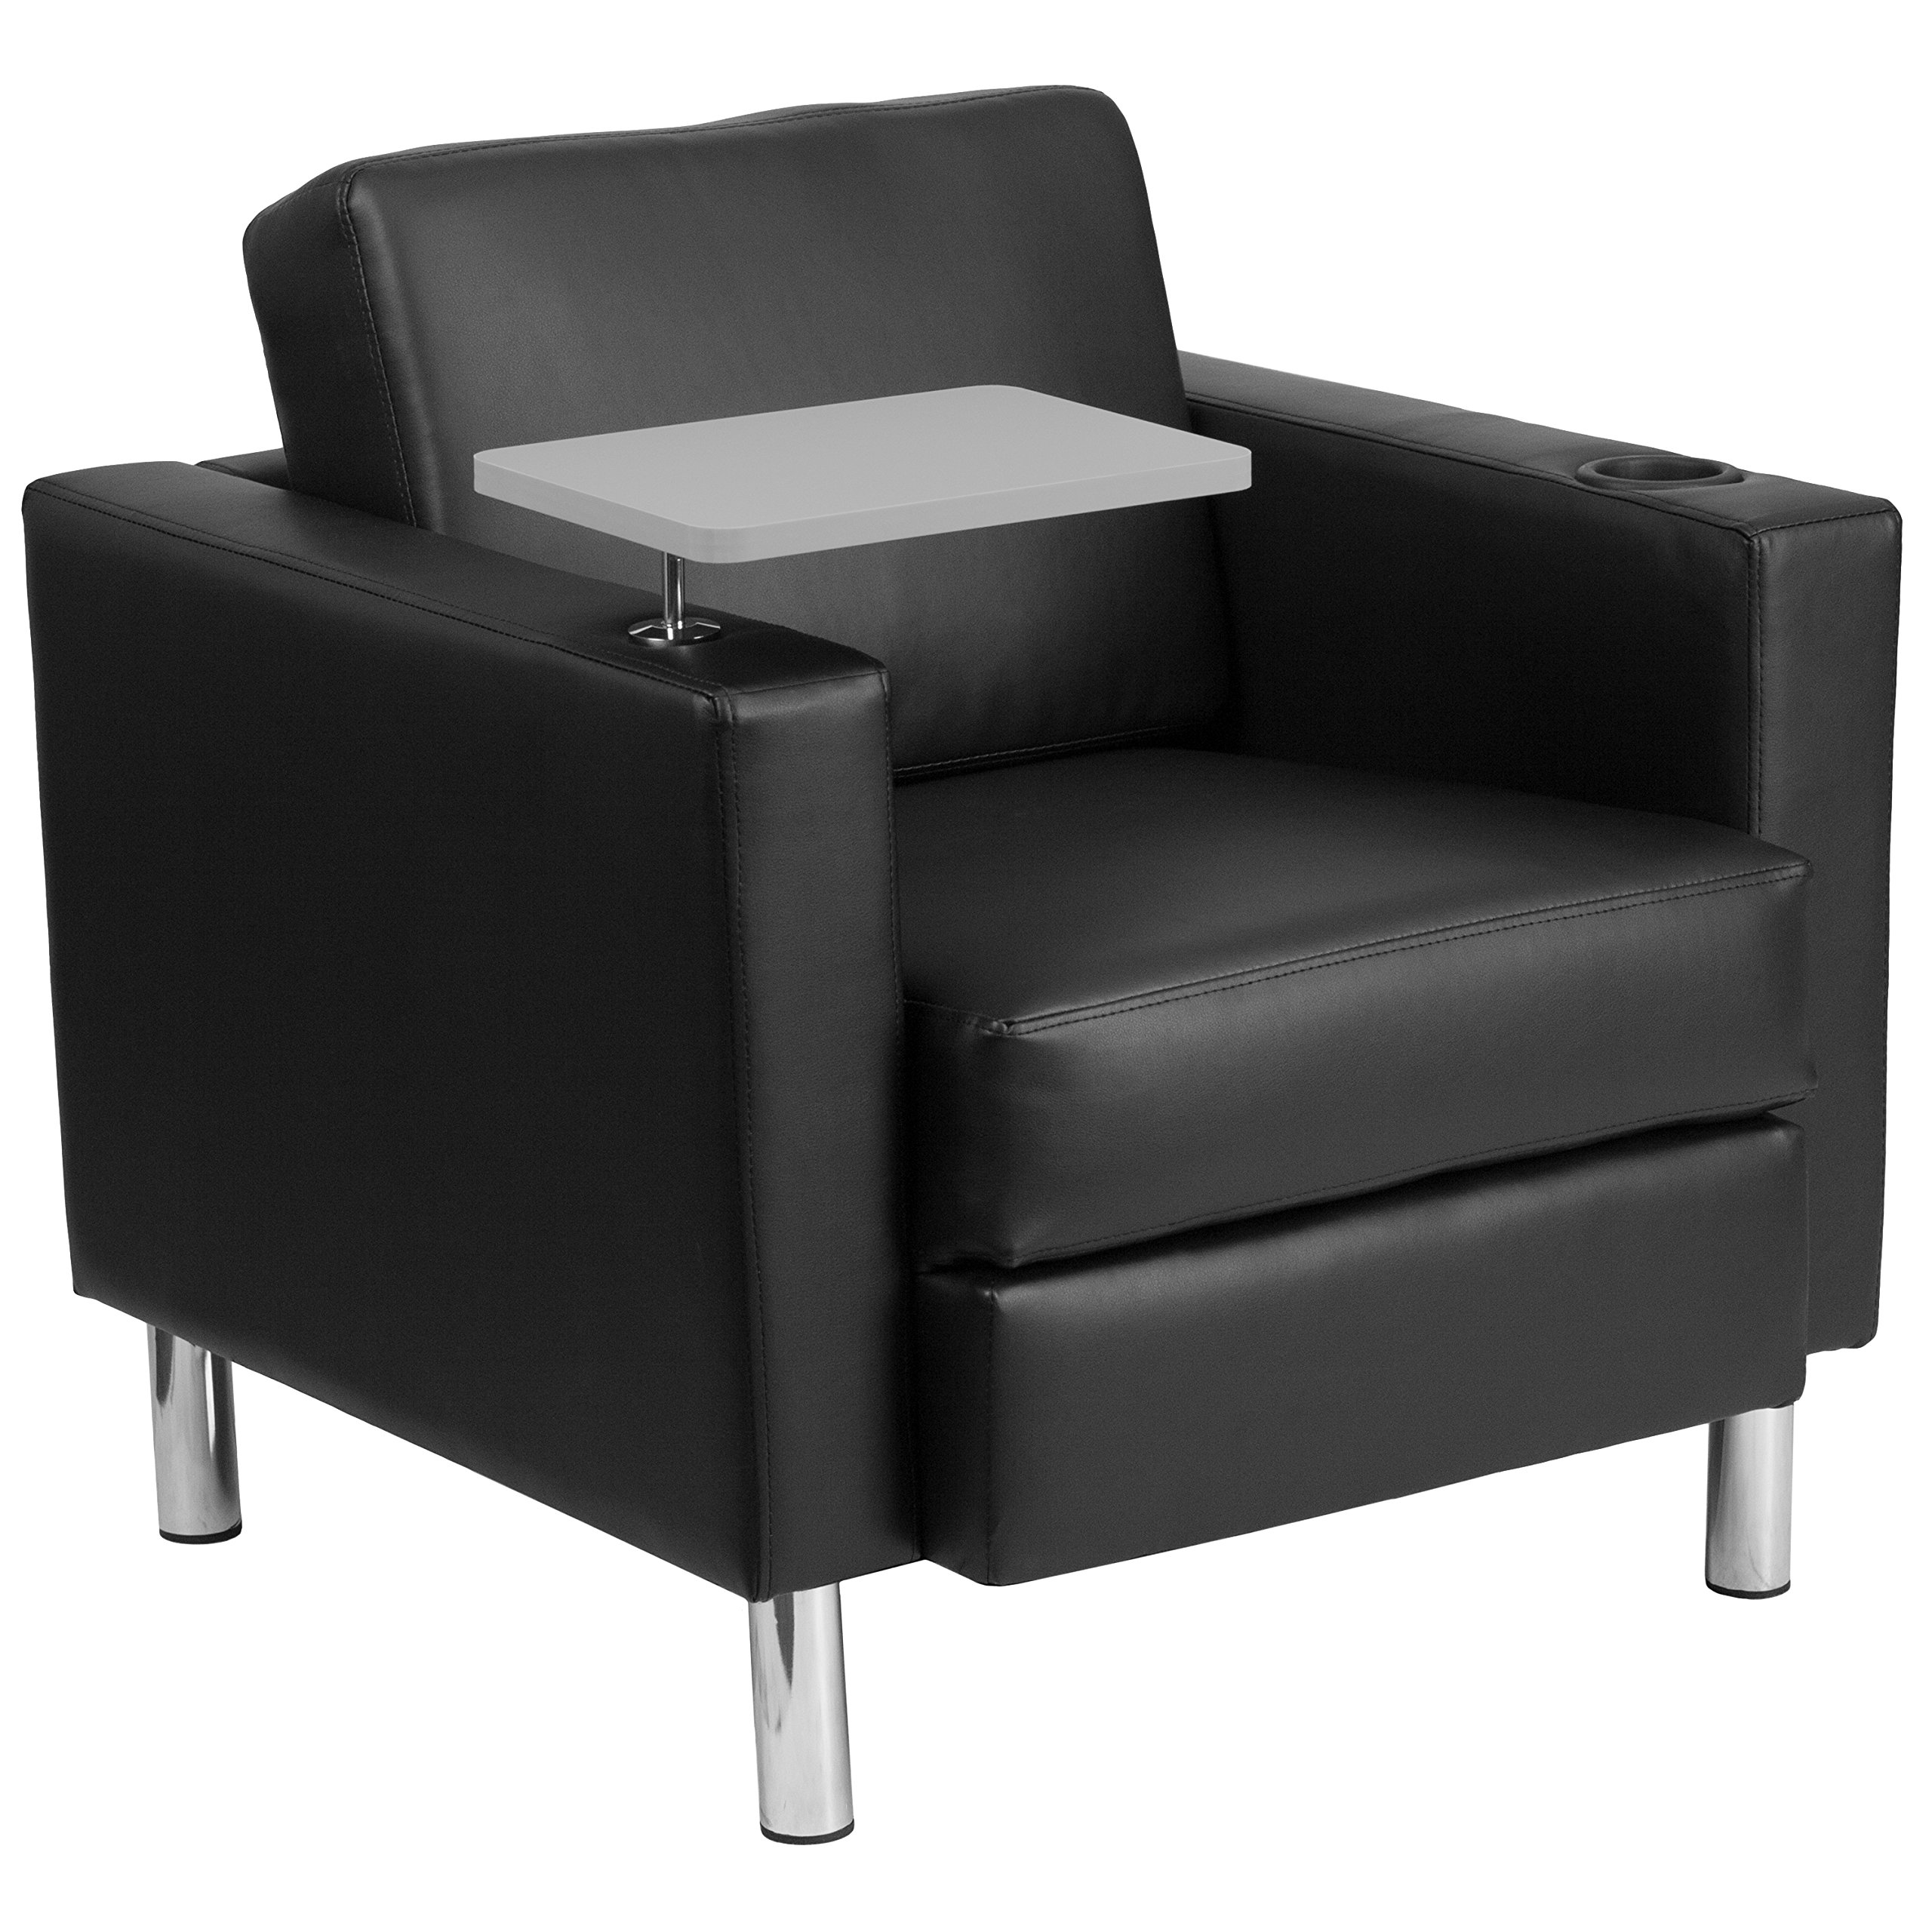 Flash Furniture Black Leather Guest Chair with Tablet Arm, Tall Chrome Legs and Cup Holder